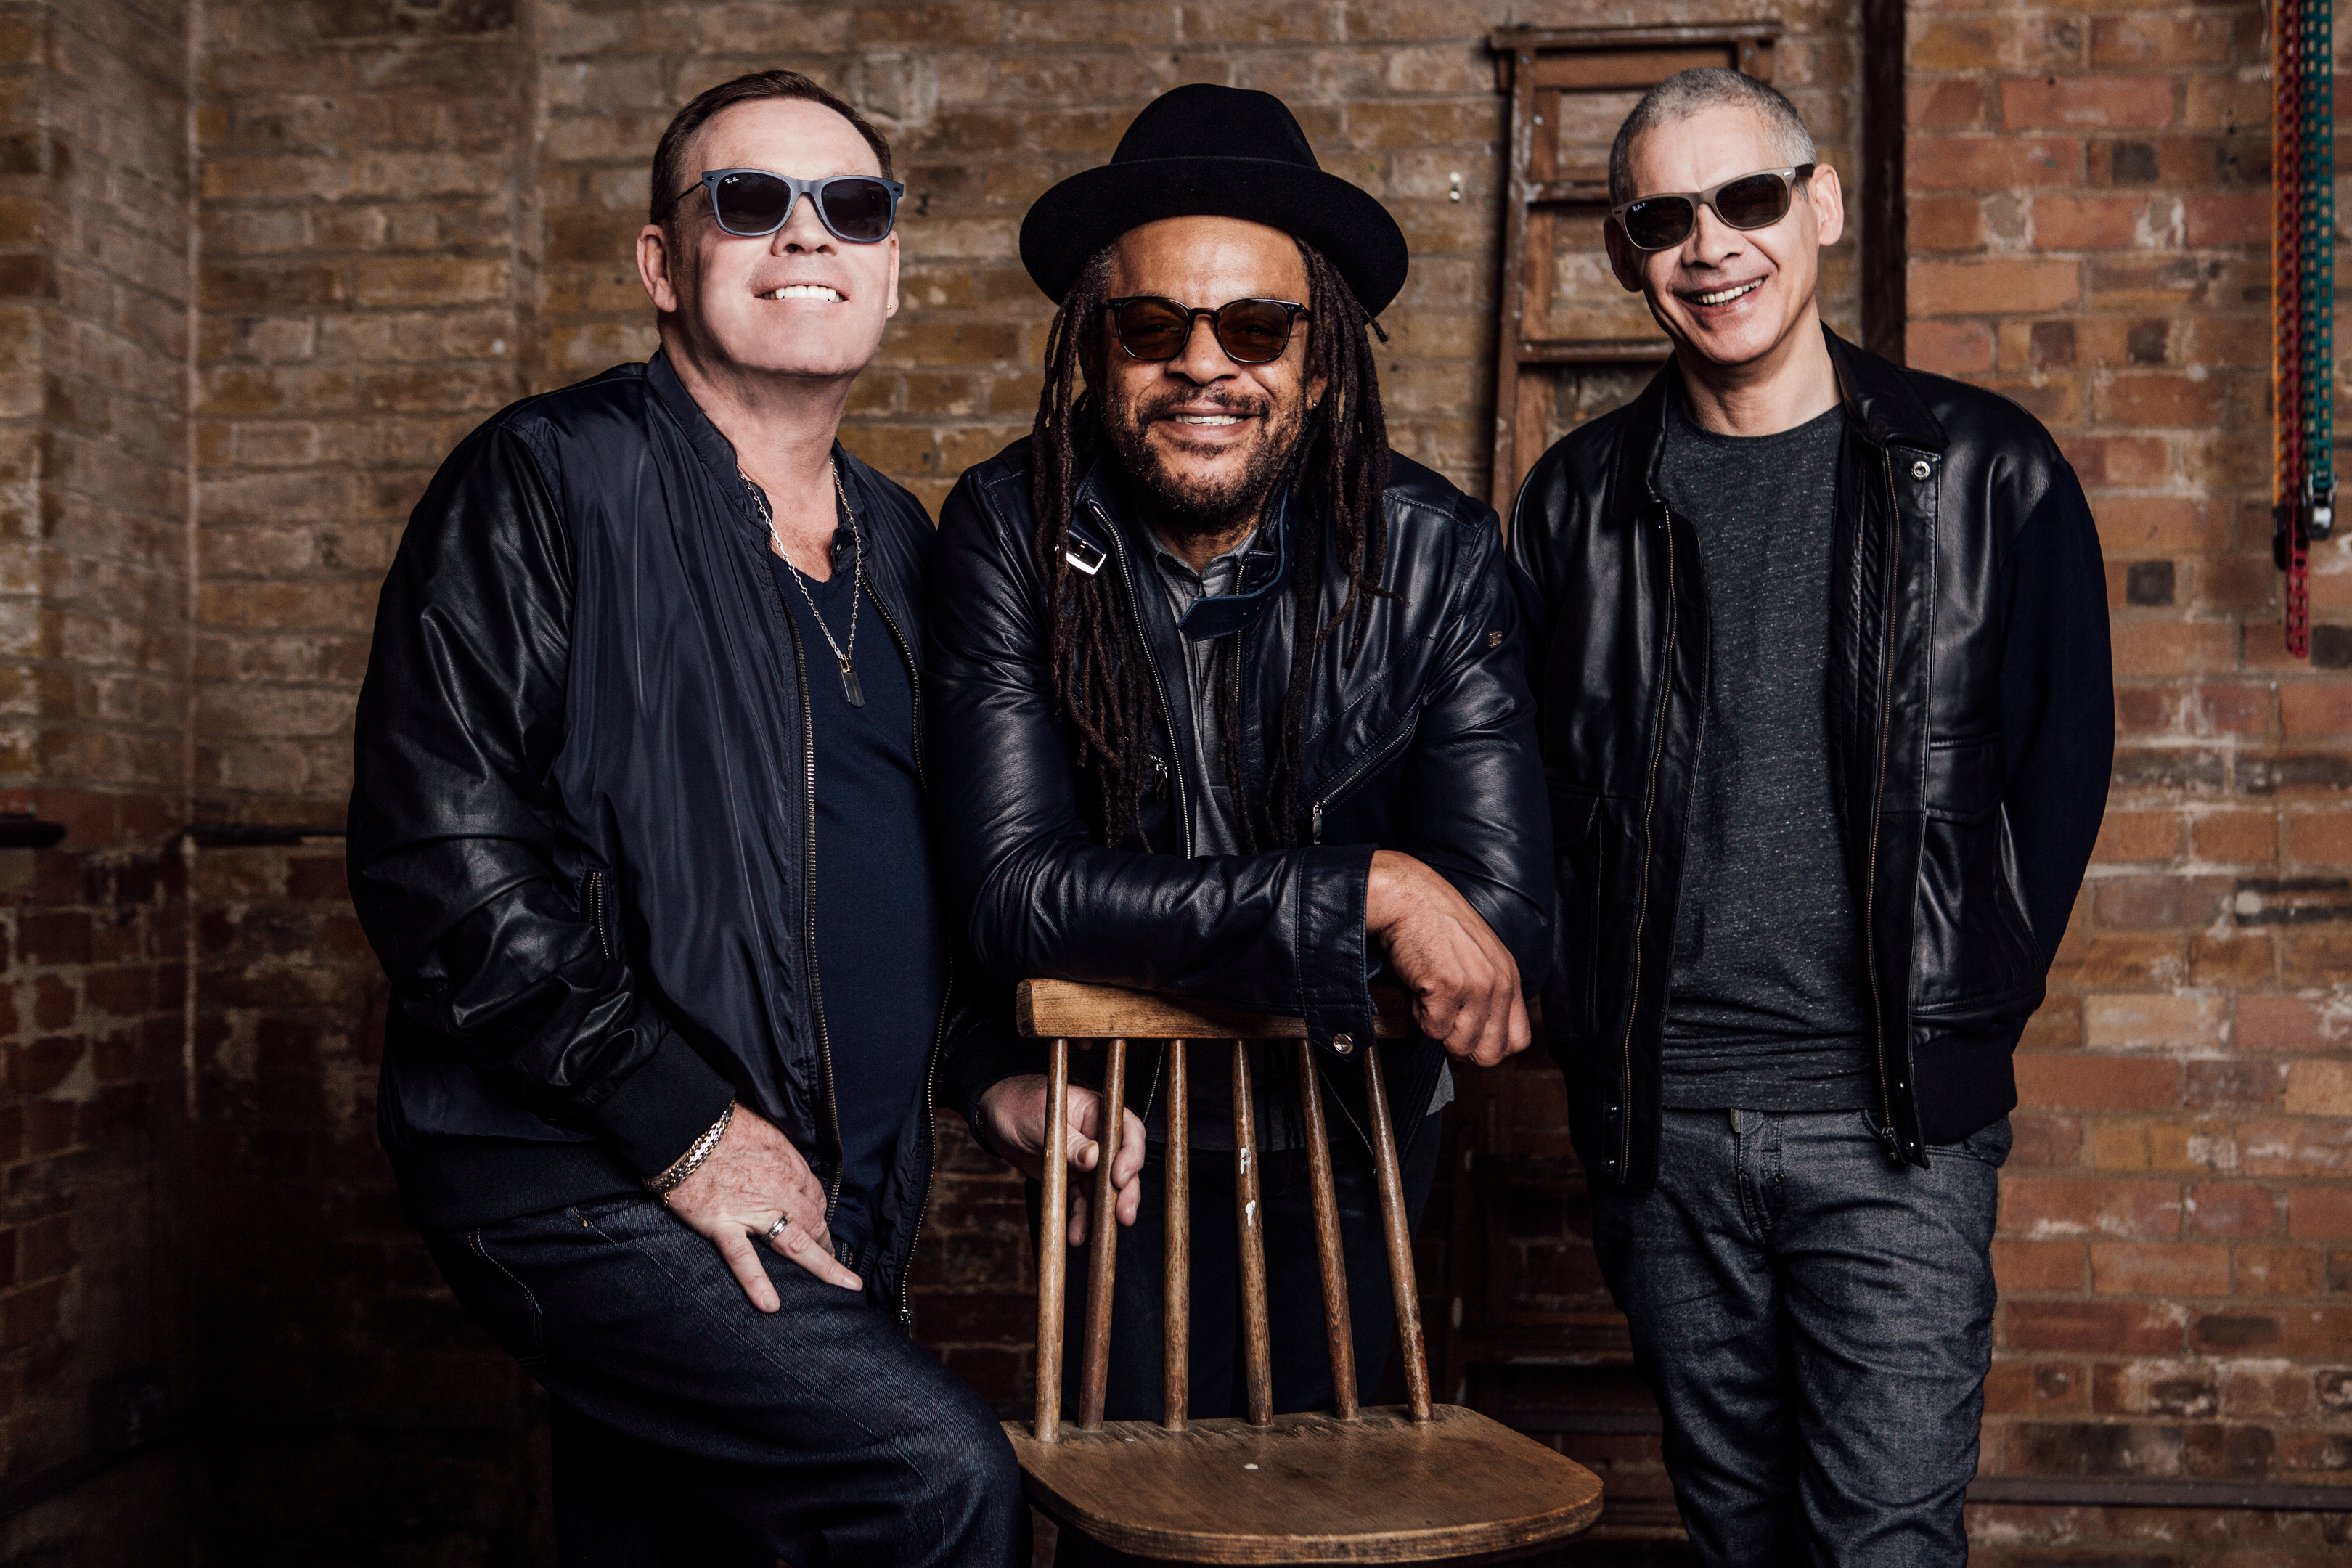 UB40 will perform in Dundee on May 20.